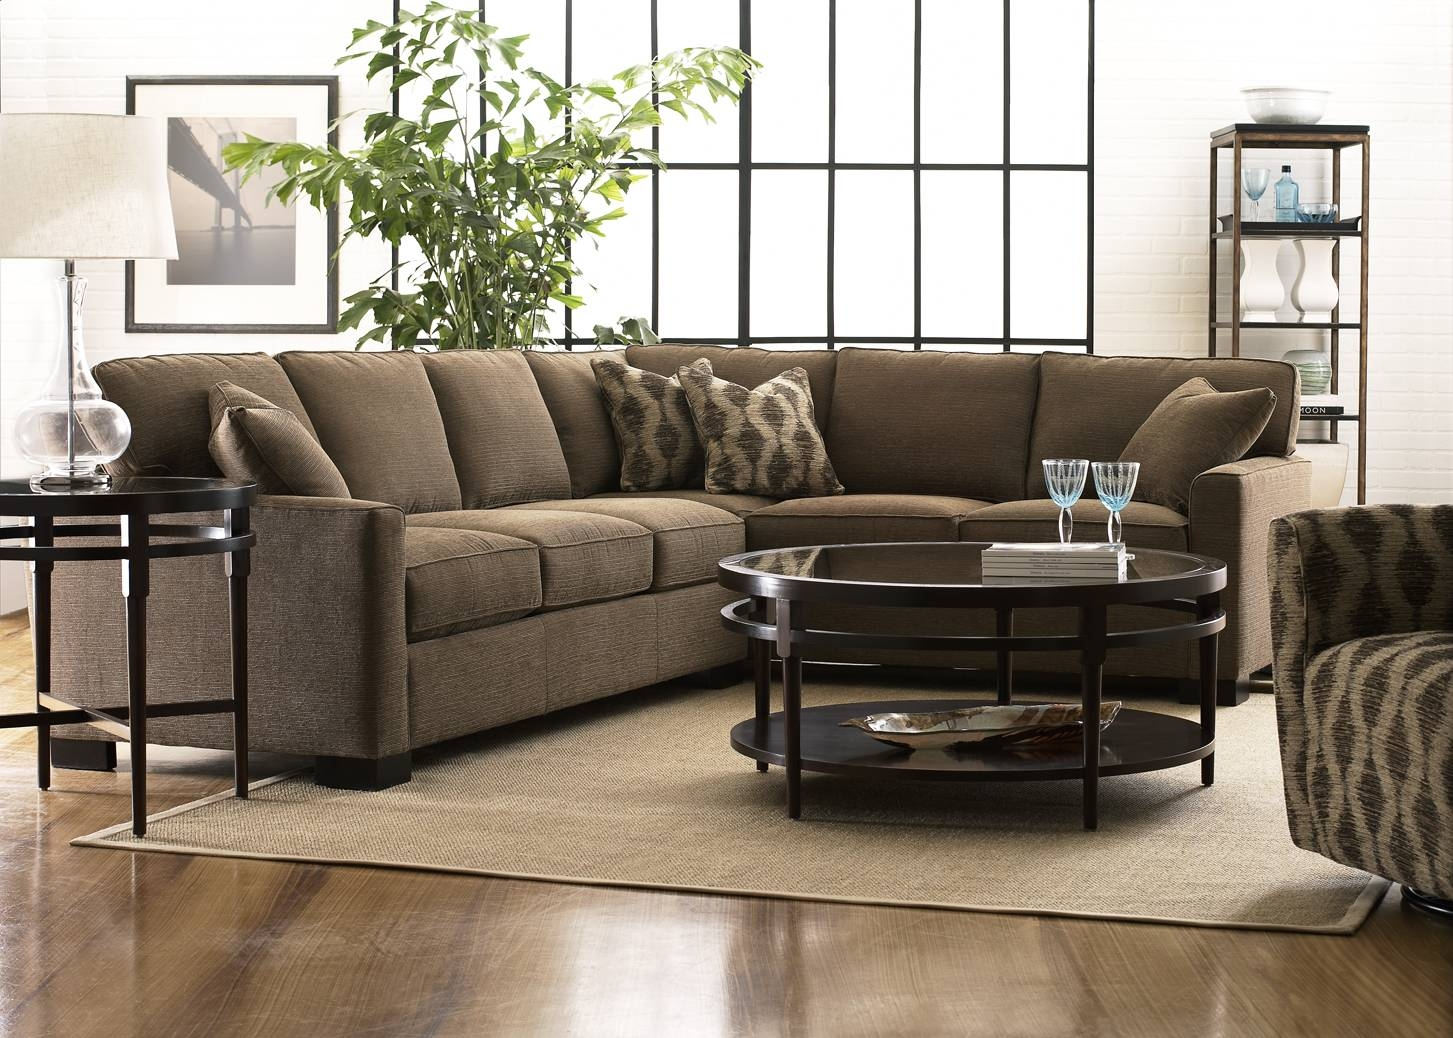 Small Sectional Sofas For Apartments regarding Armchairs For Small Spaces (Image 24 of 30)